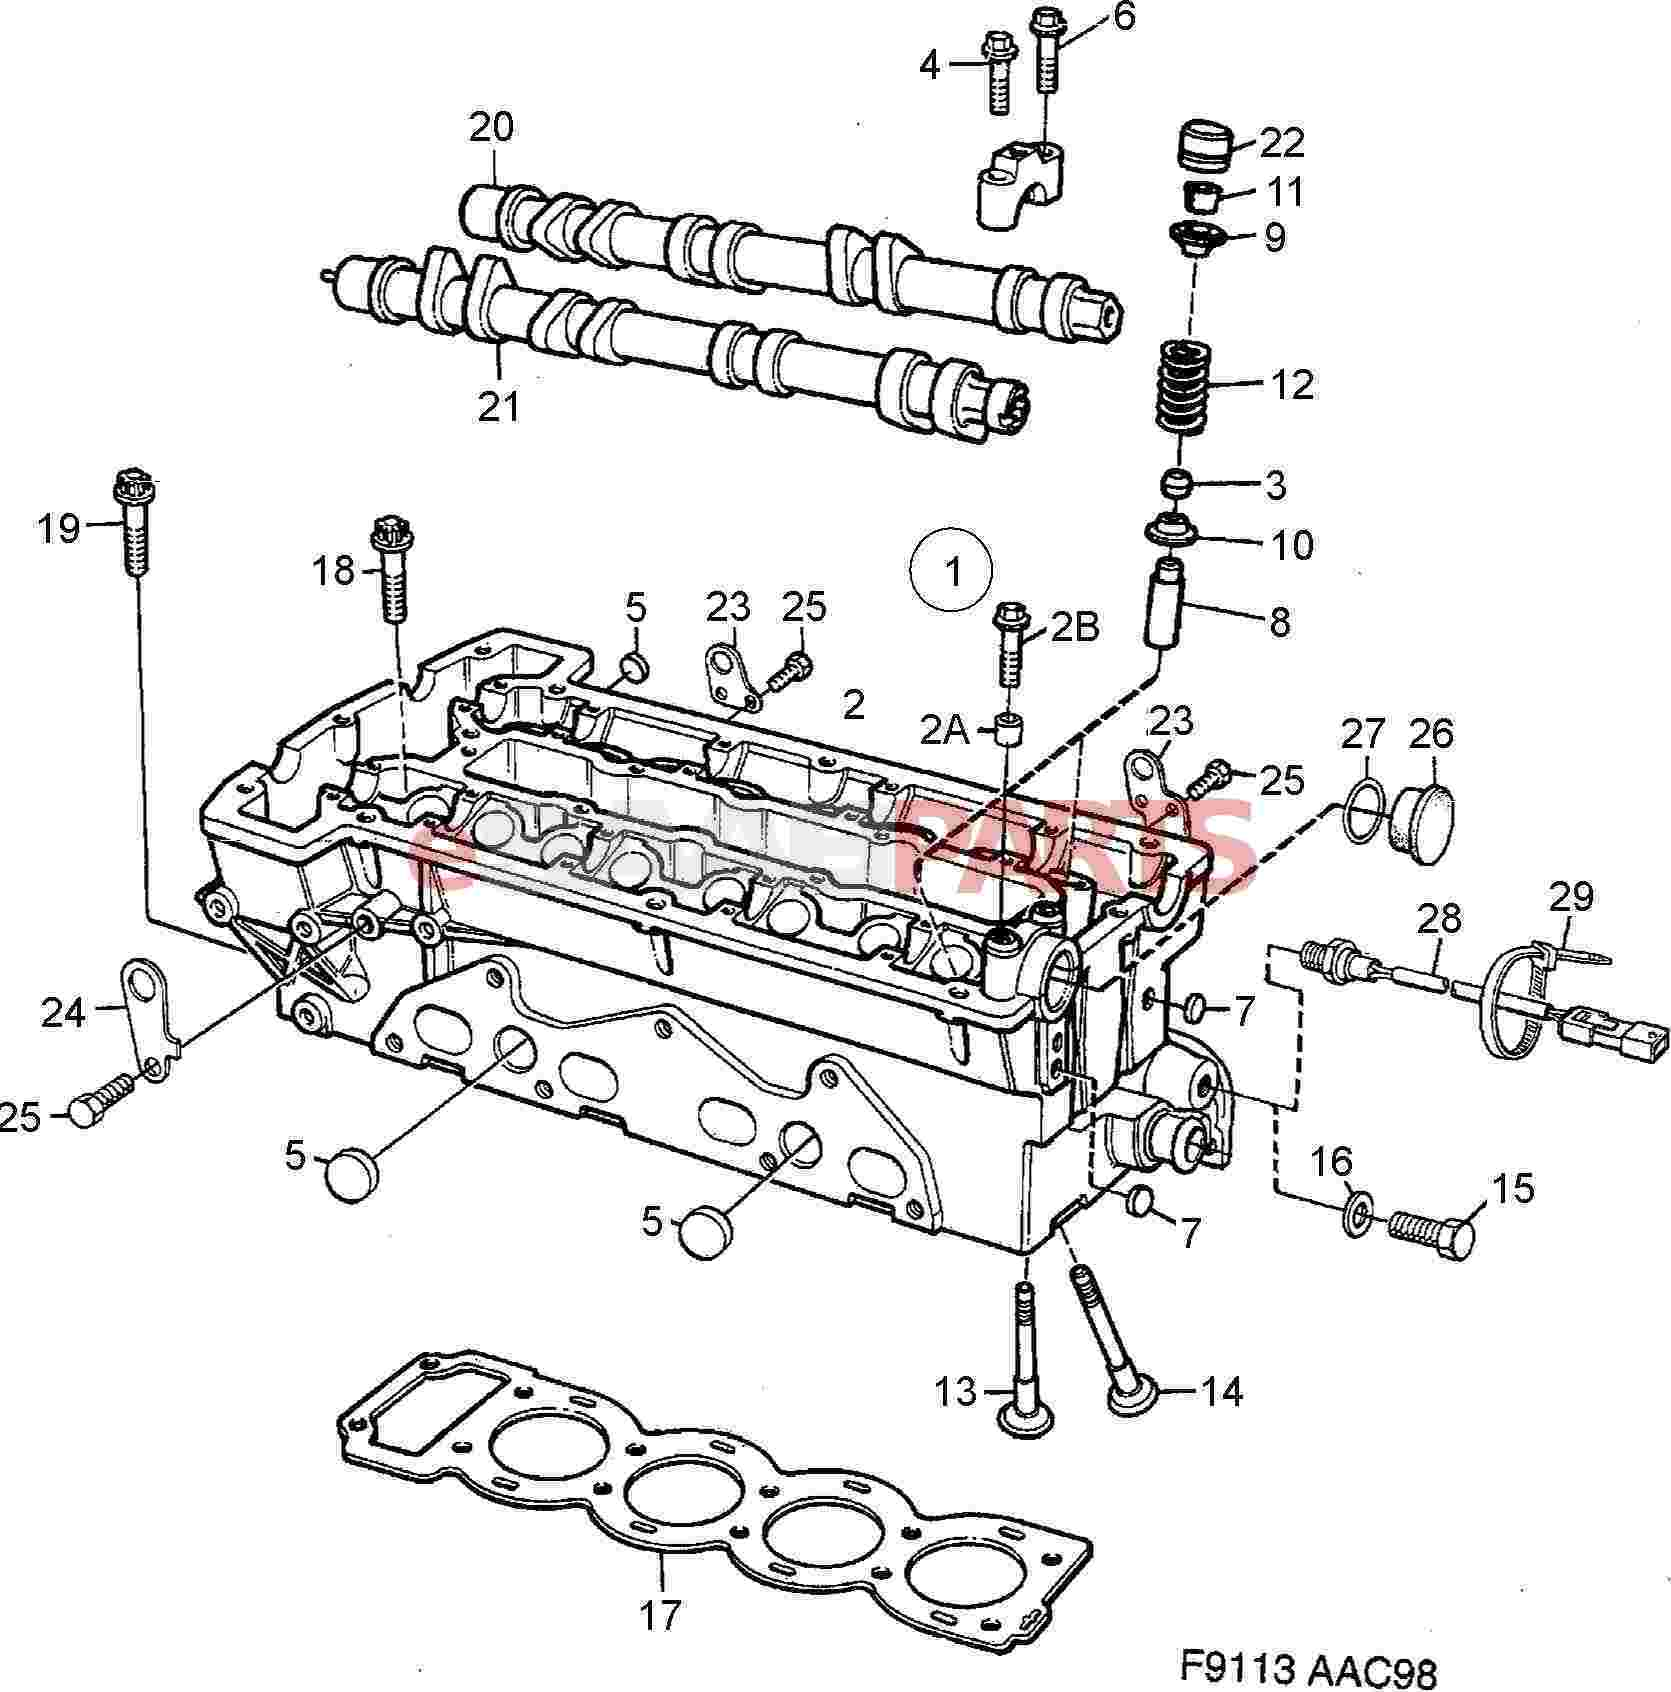 97 Audi A4 Fuse Box Location. Audi. Auto Fuse Box Diagram